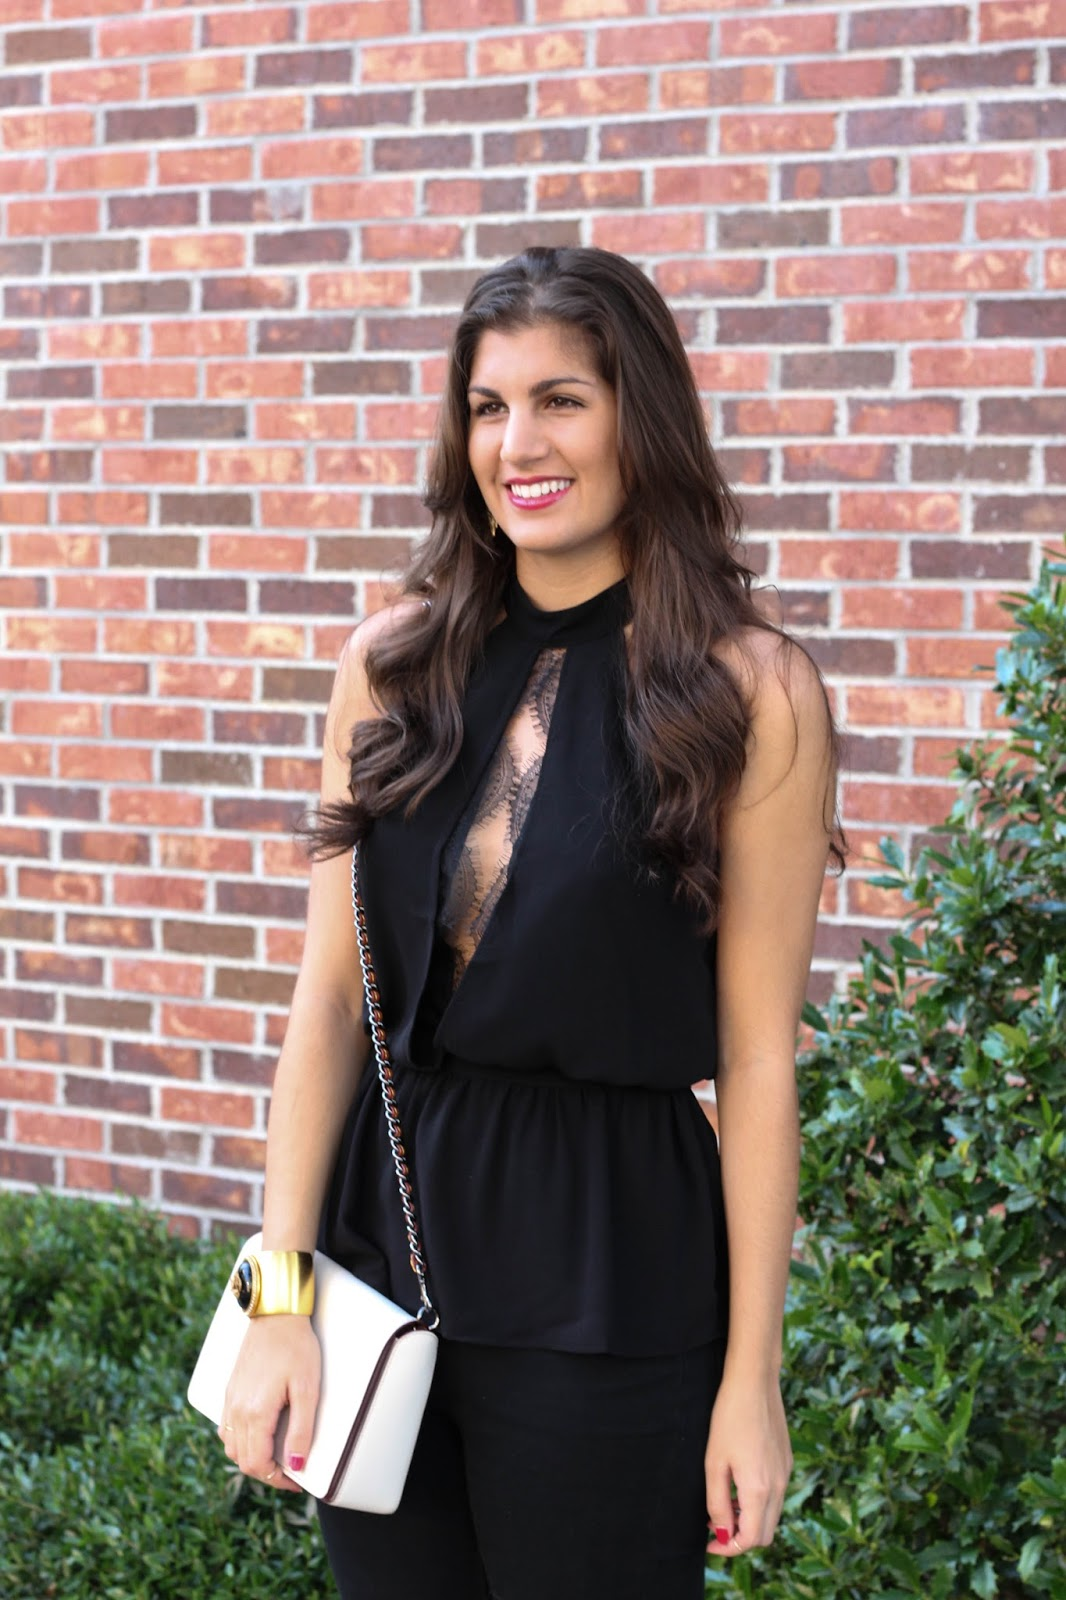 Summer Date Night Style - Black Lace Top, www.Neutral2Neon.com